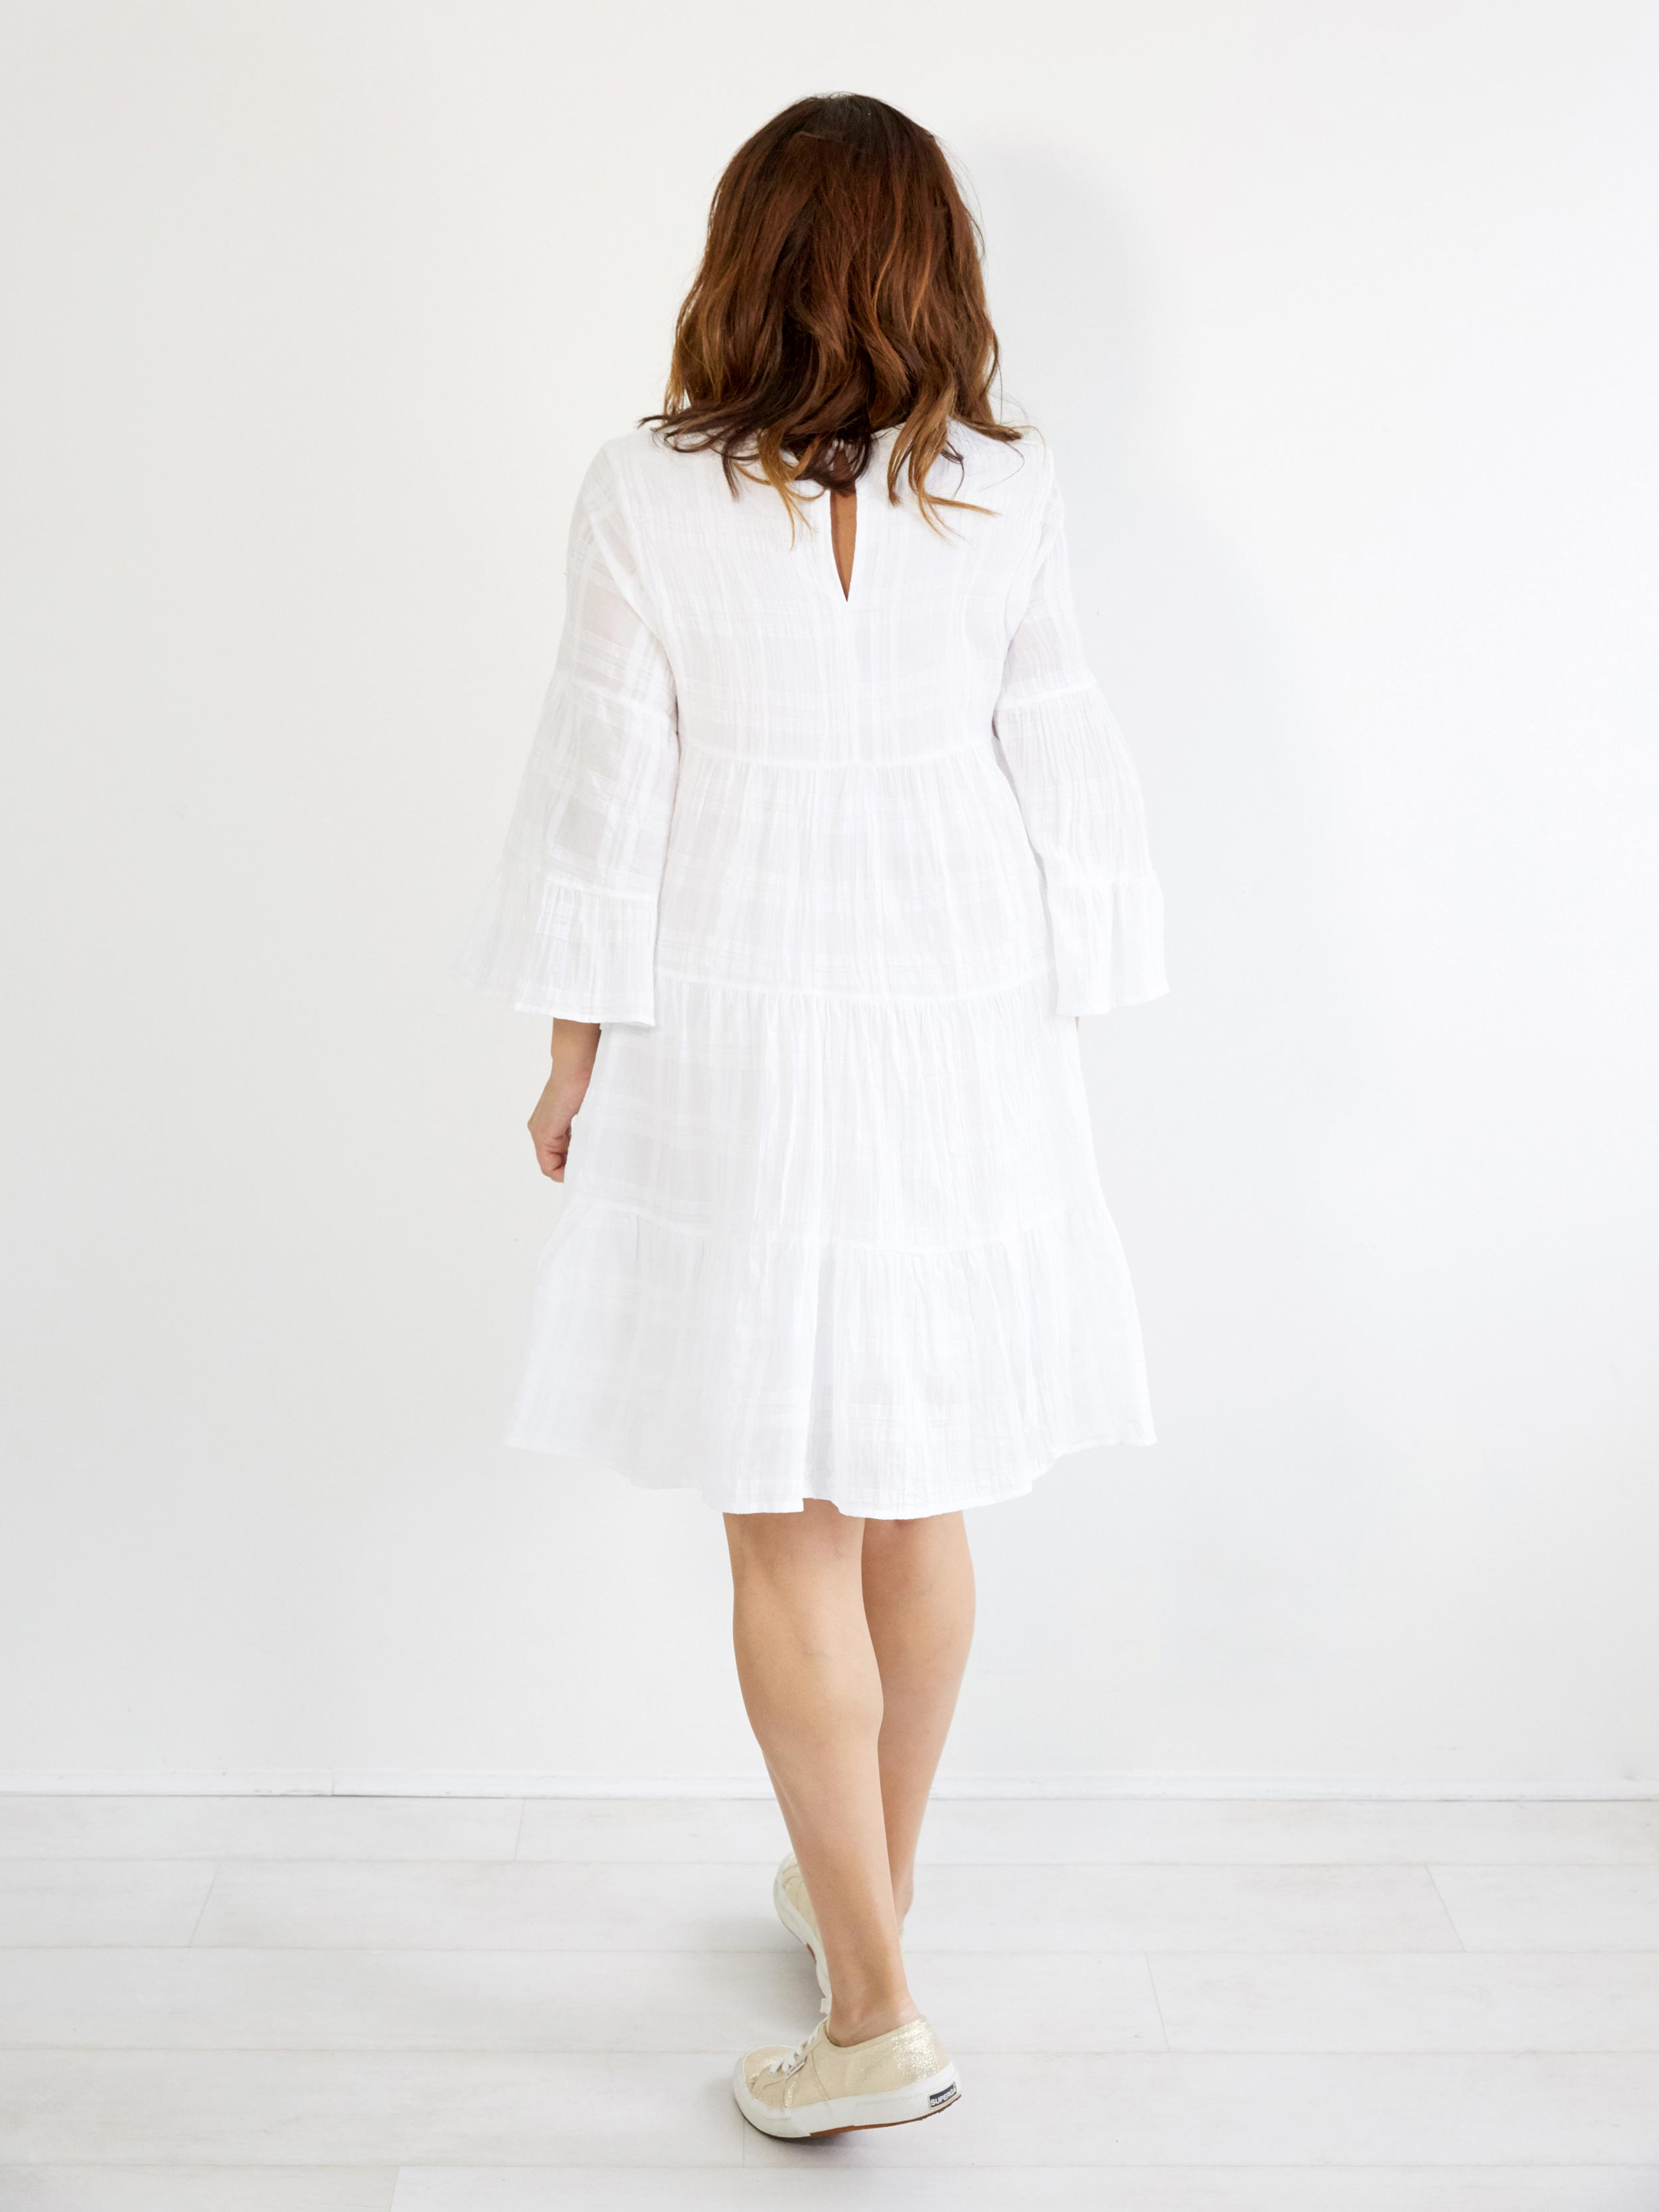 PARISIAN LOVE WHITE DRESS